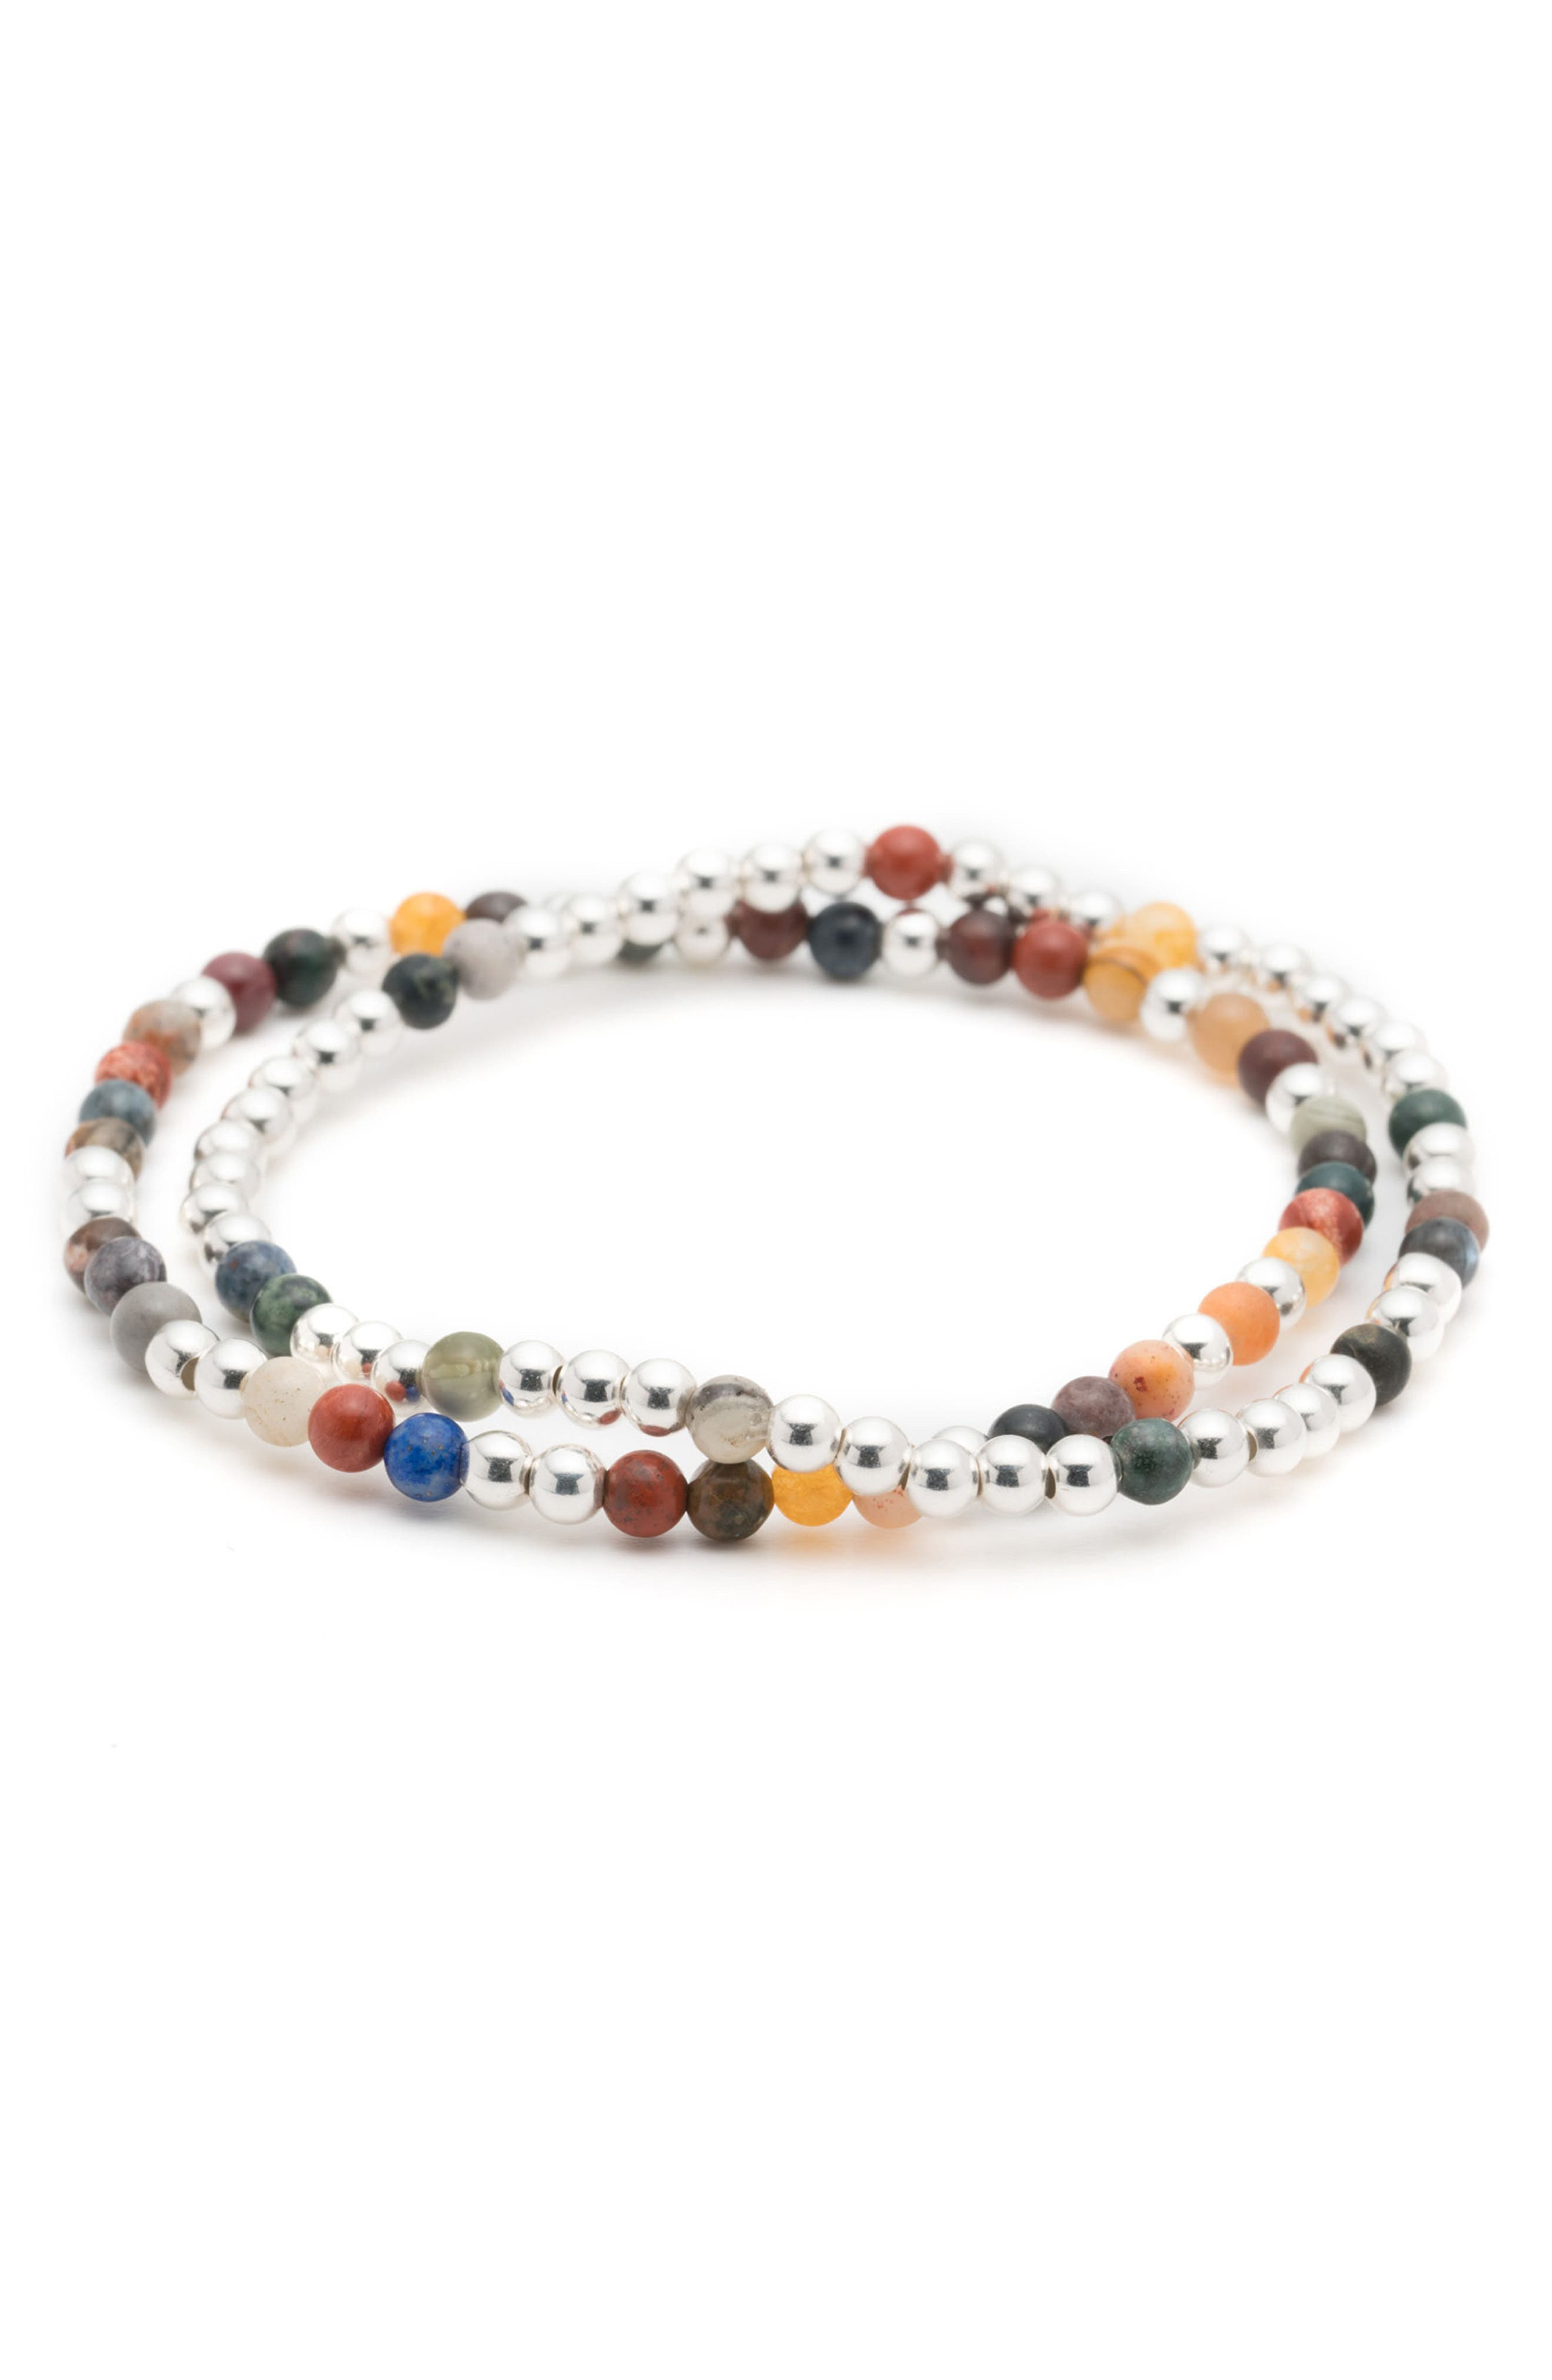 Essaouira 2-Pack Bracelets,                             Main thumbnail 1, color,                             Silver/ Multi